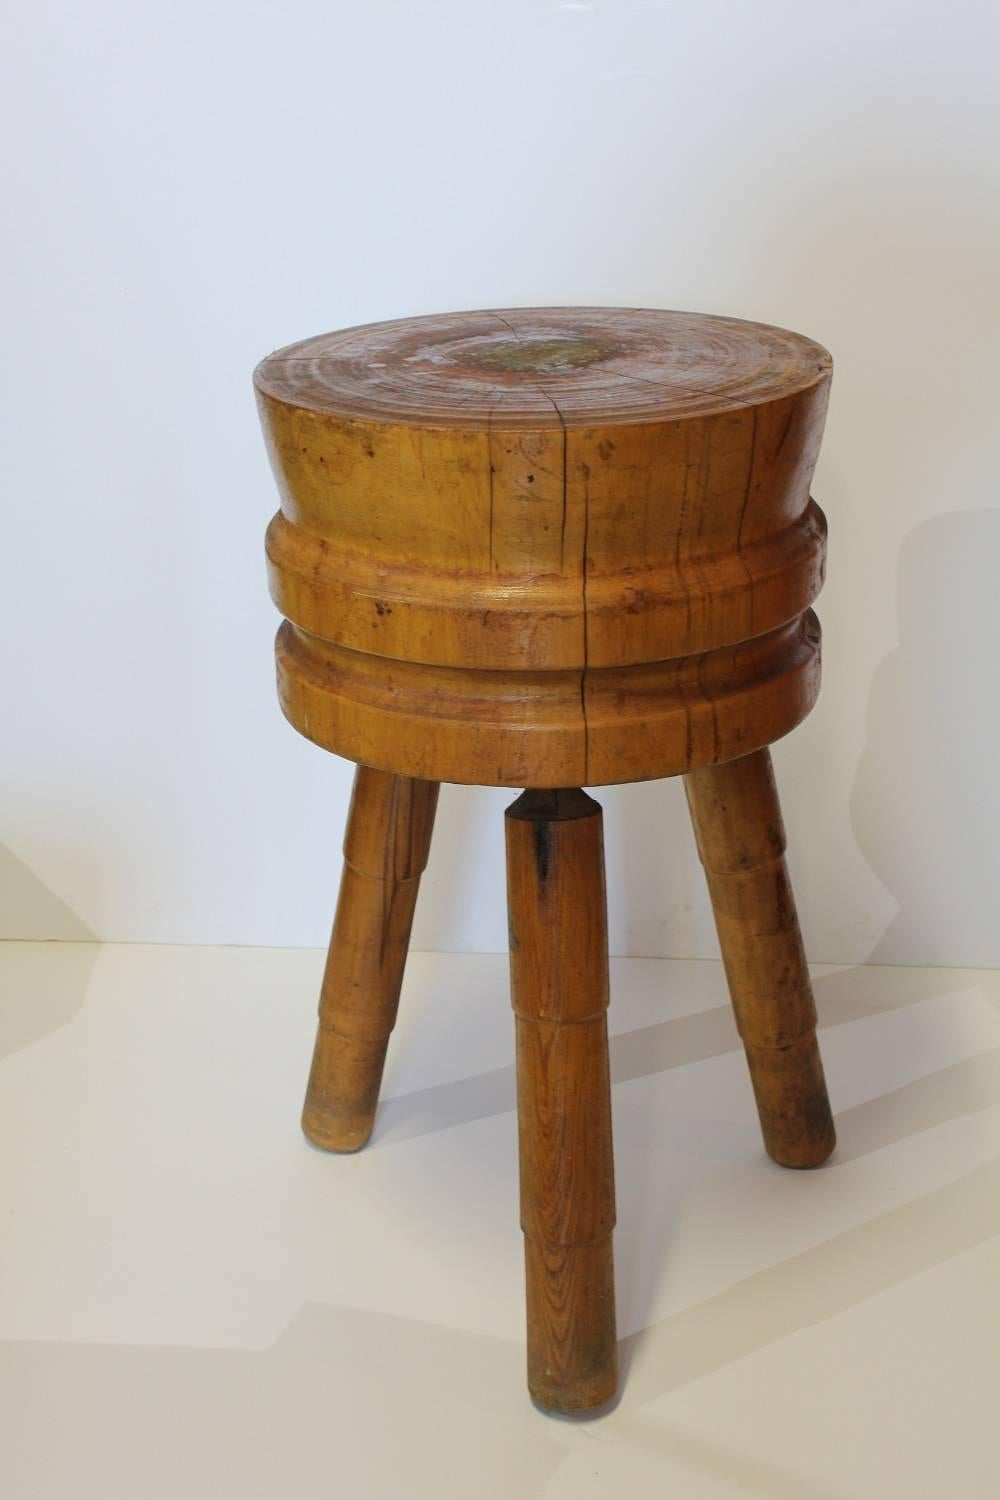 Antique Butcher Round Block Table.